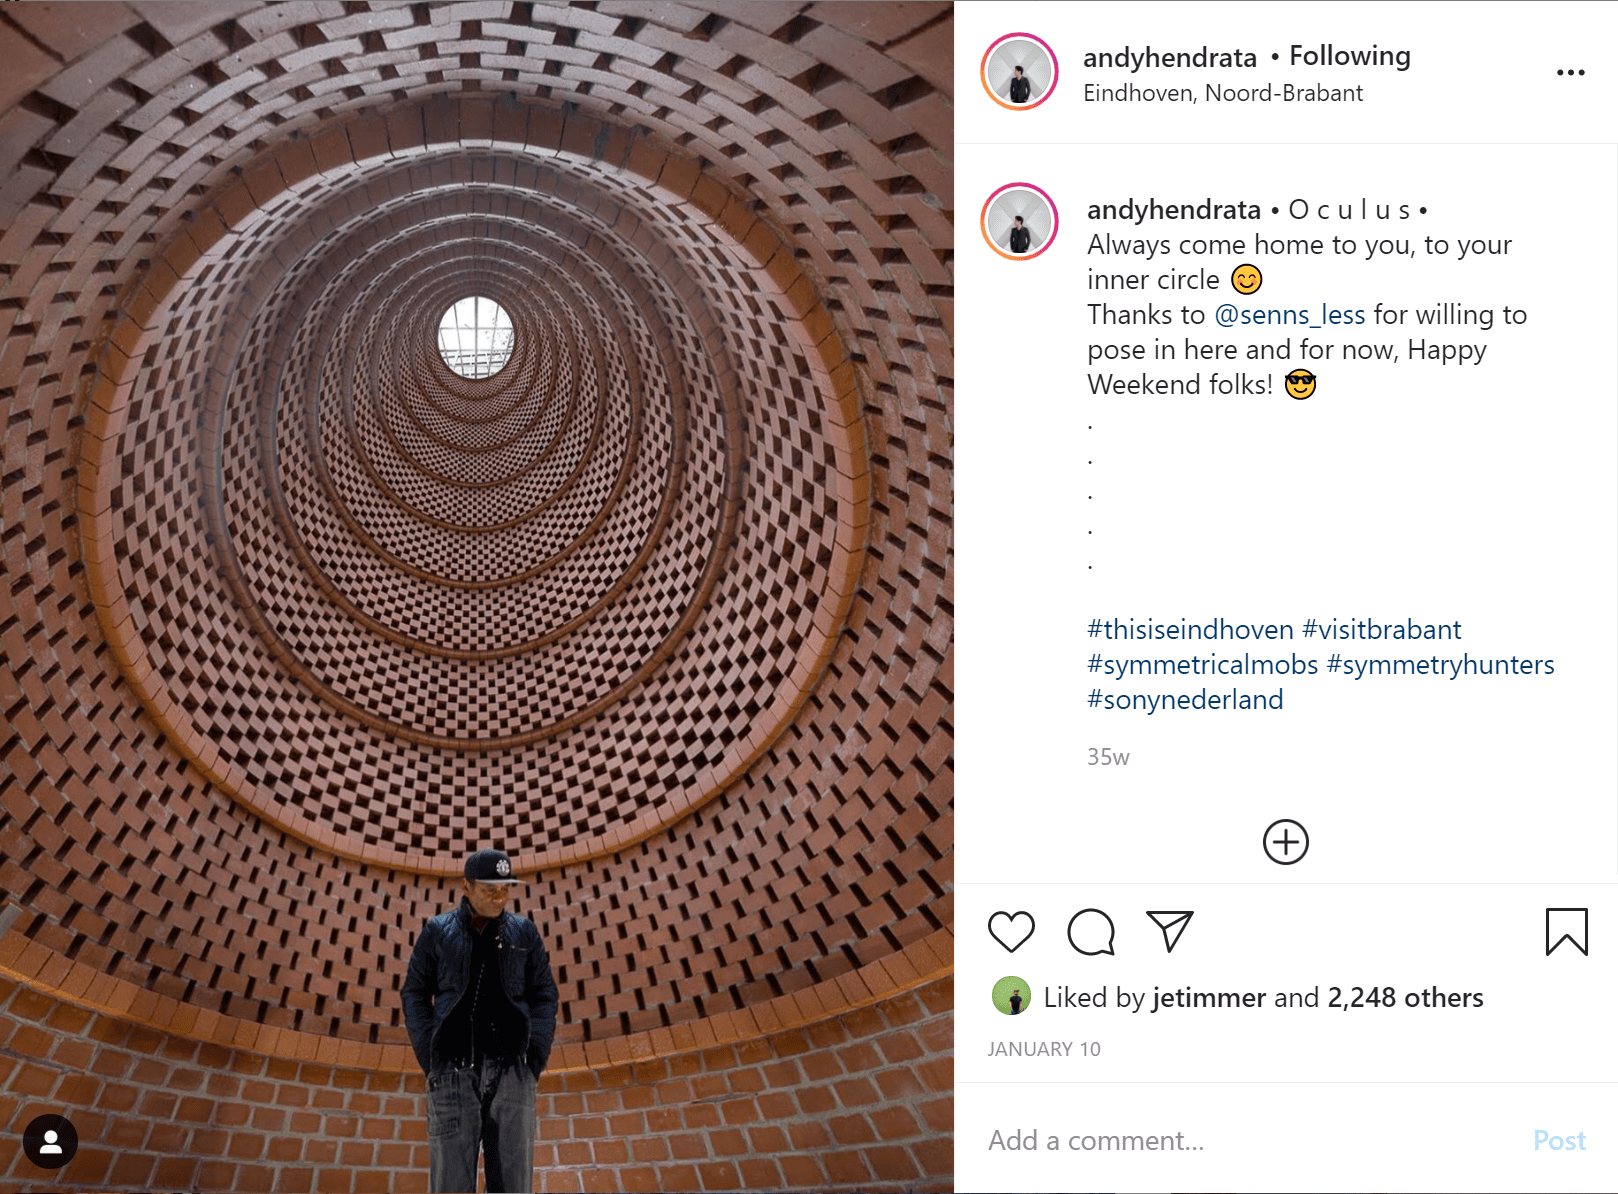 an instagrammable building, a man wearing black stands inside a tall circular structure made from red bricks